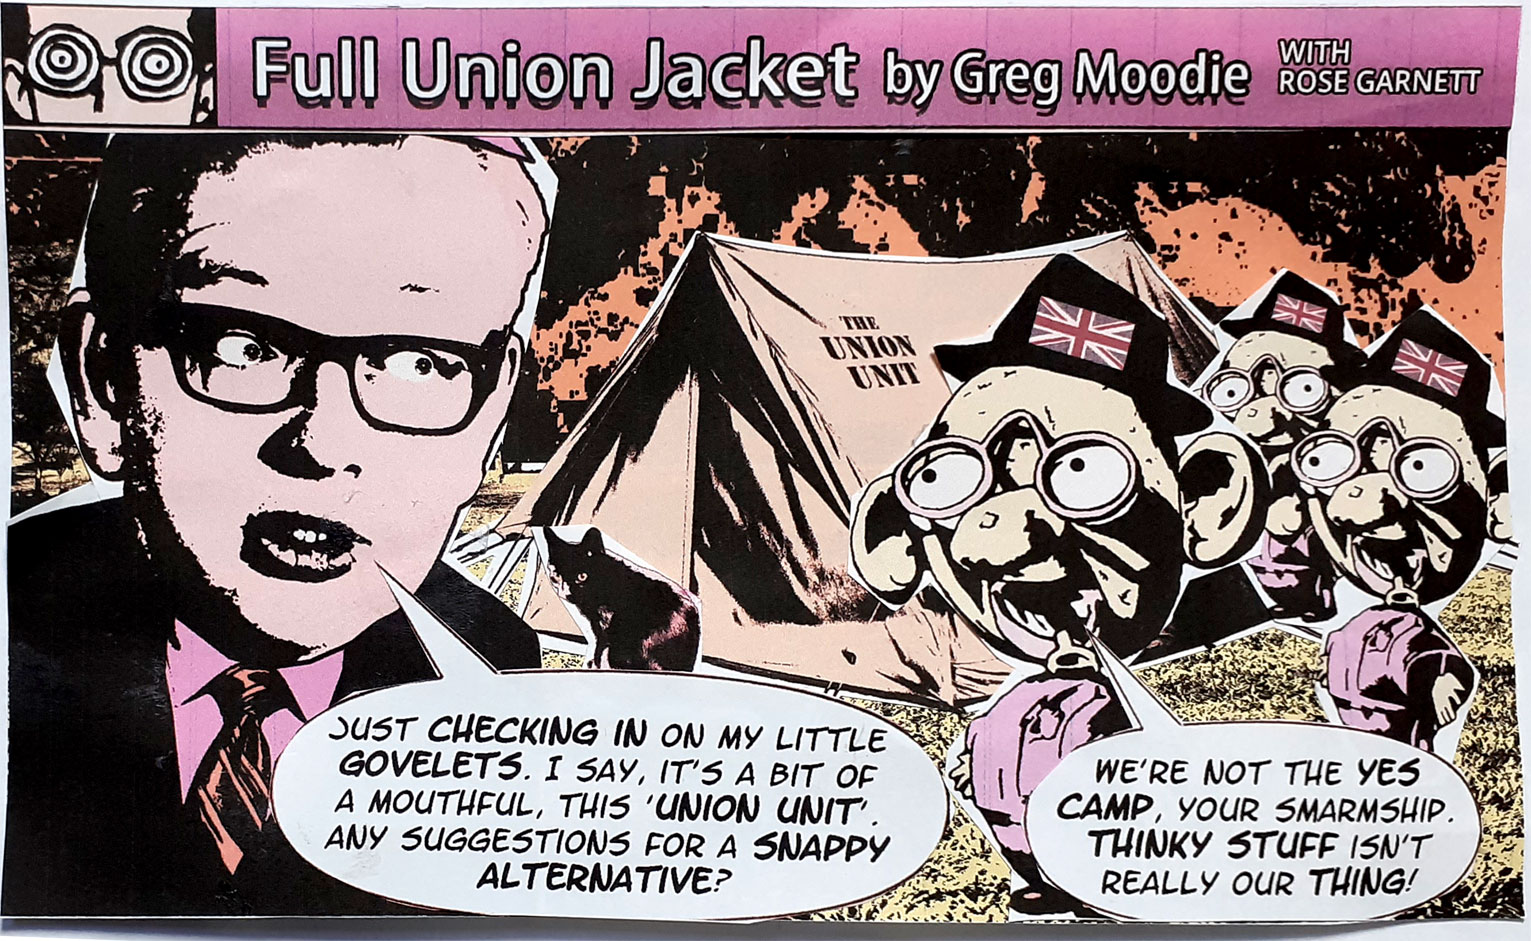 Full Union Jacket